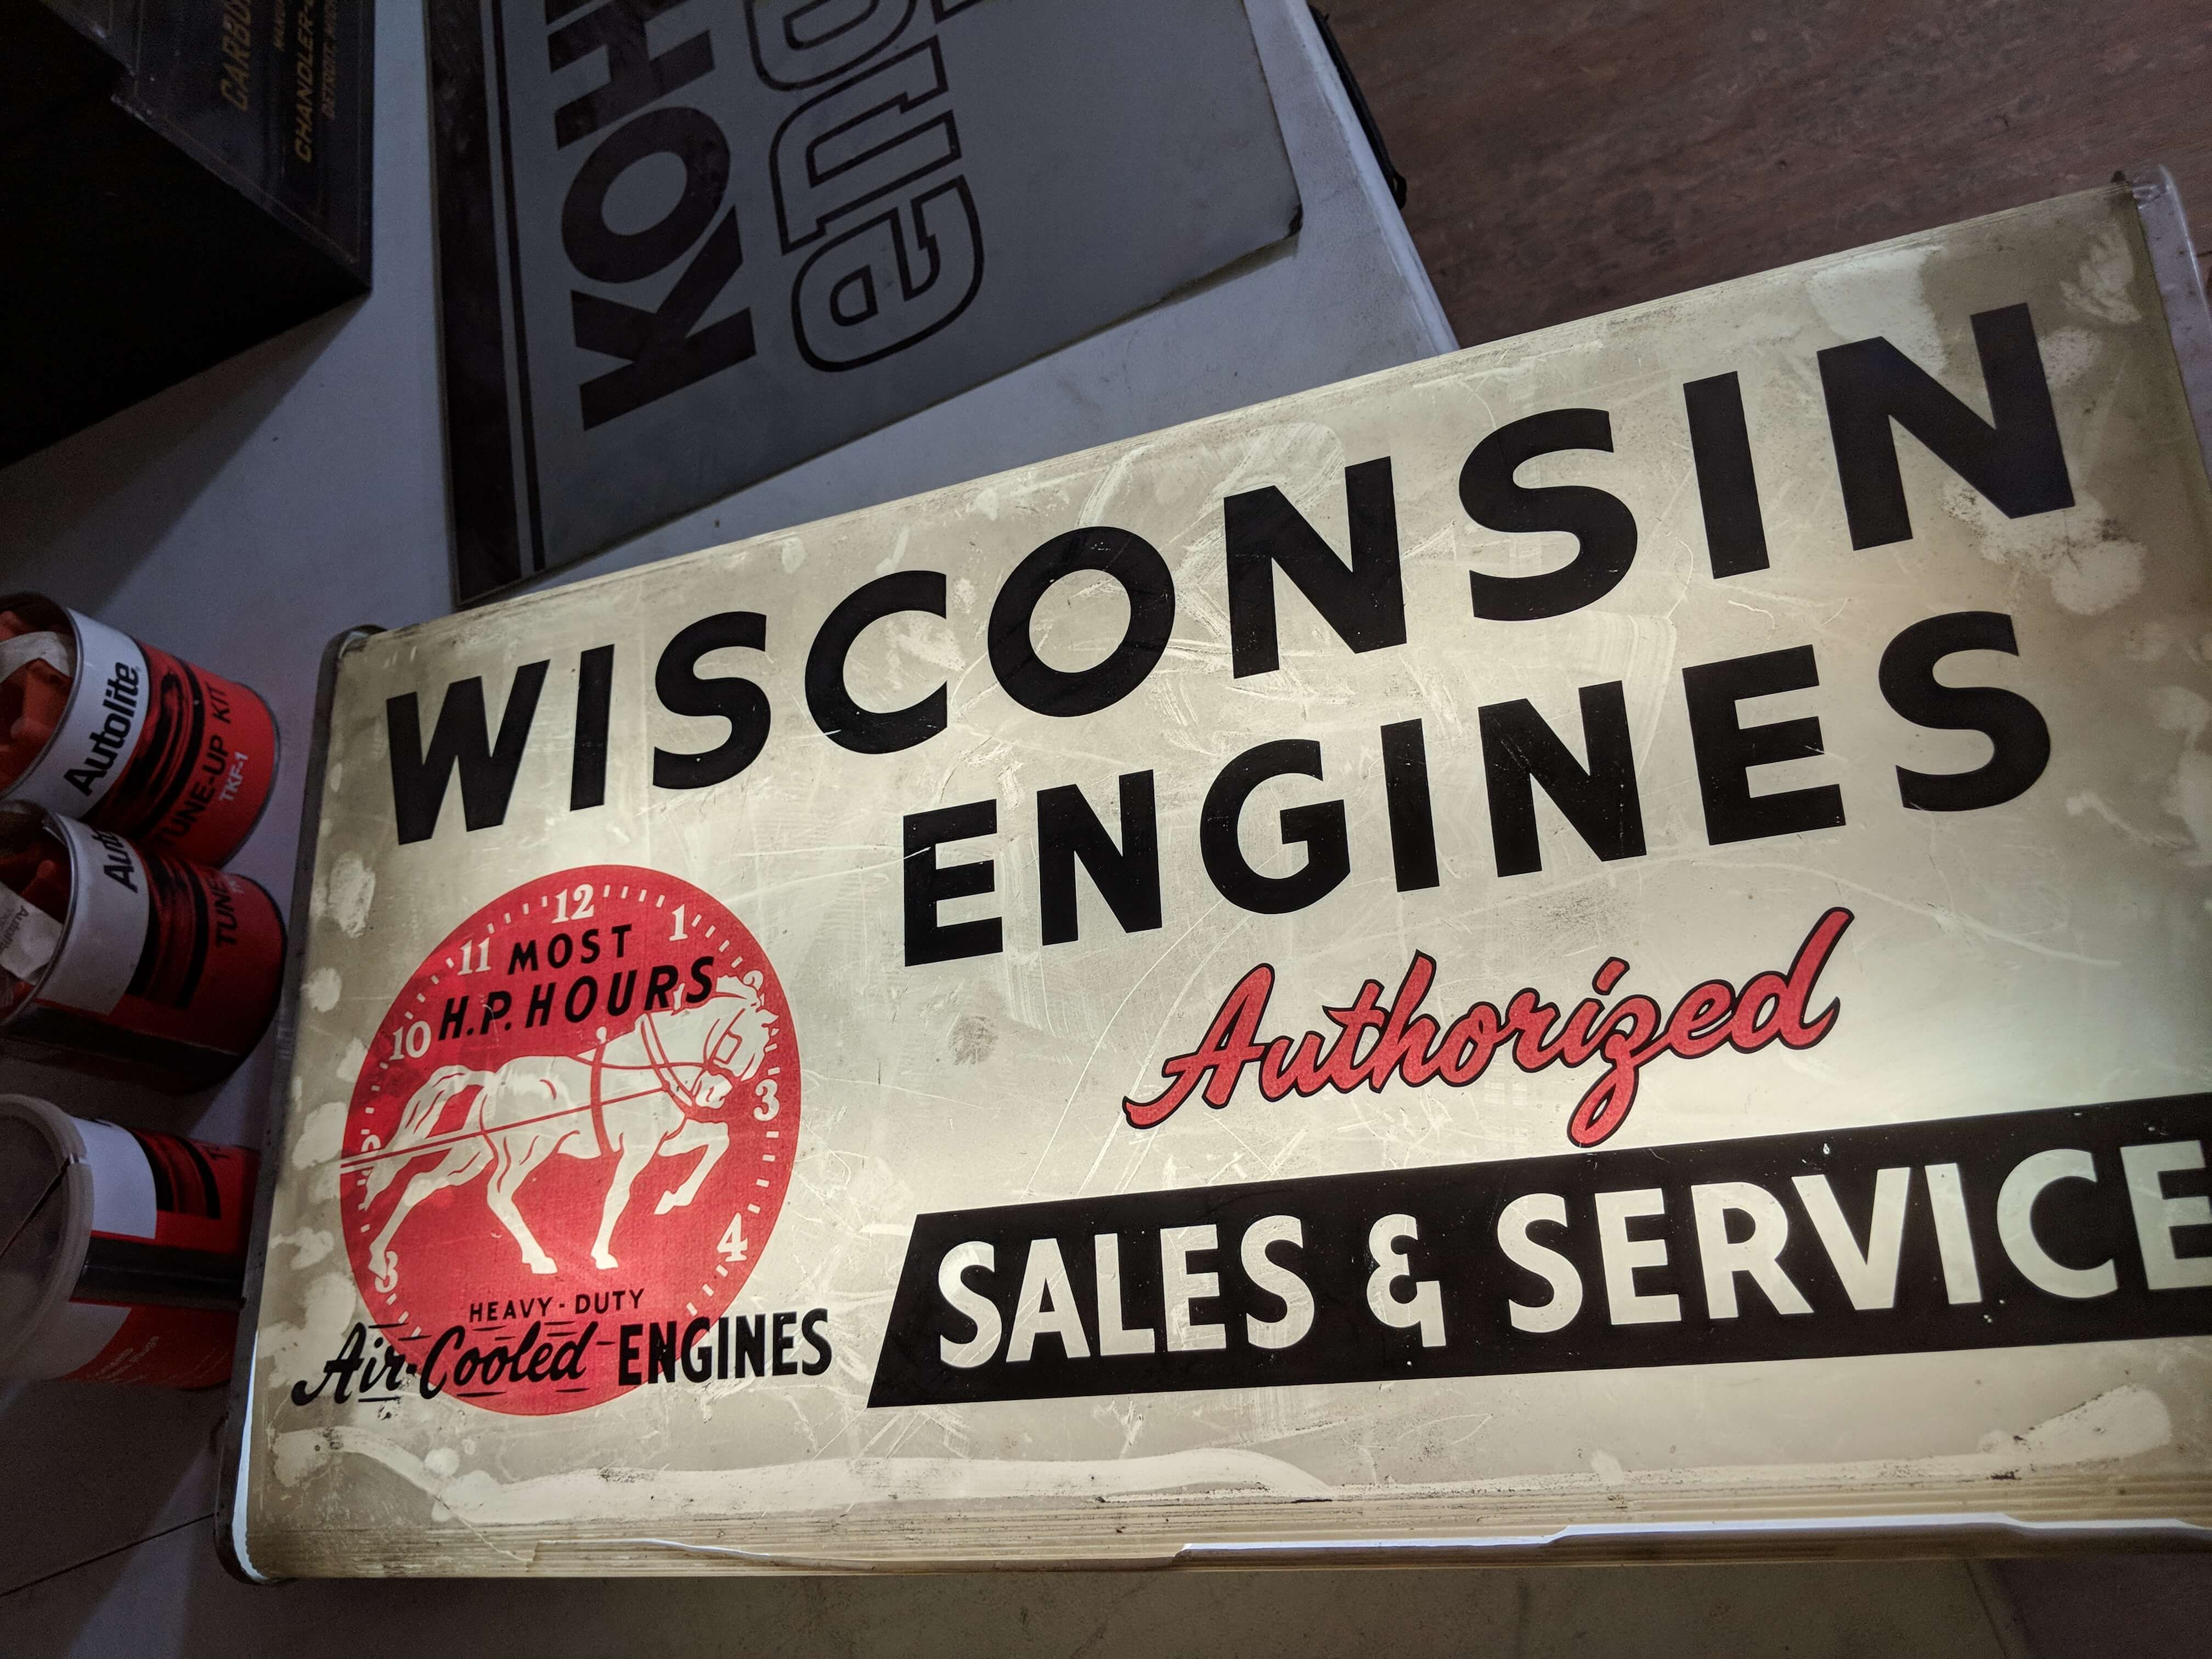 Wisconsin Engines Sign - Fox Auction Company